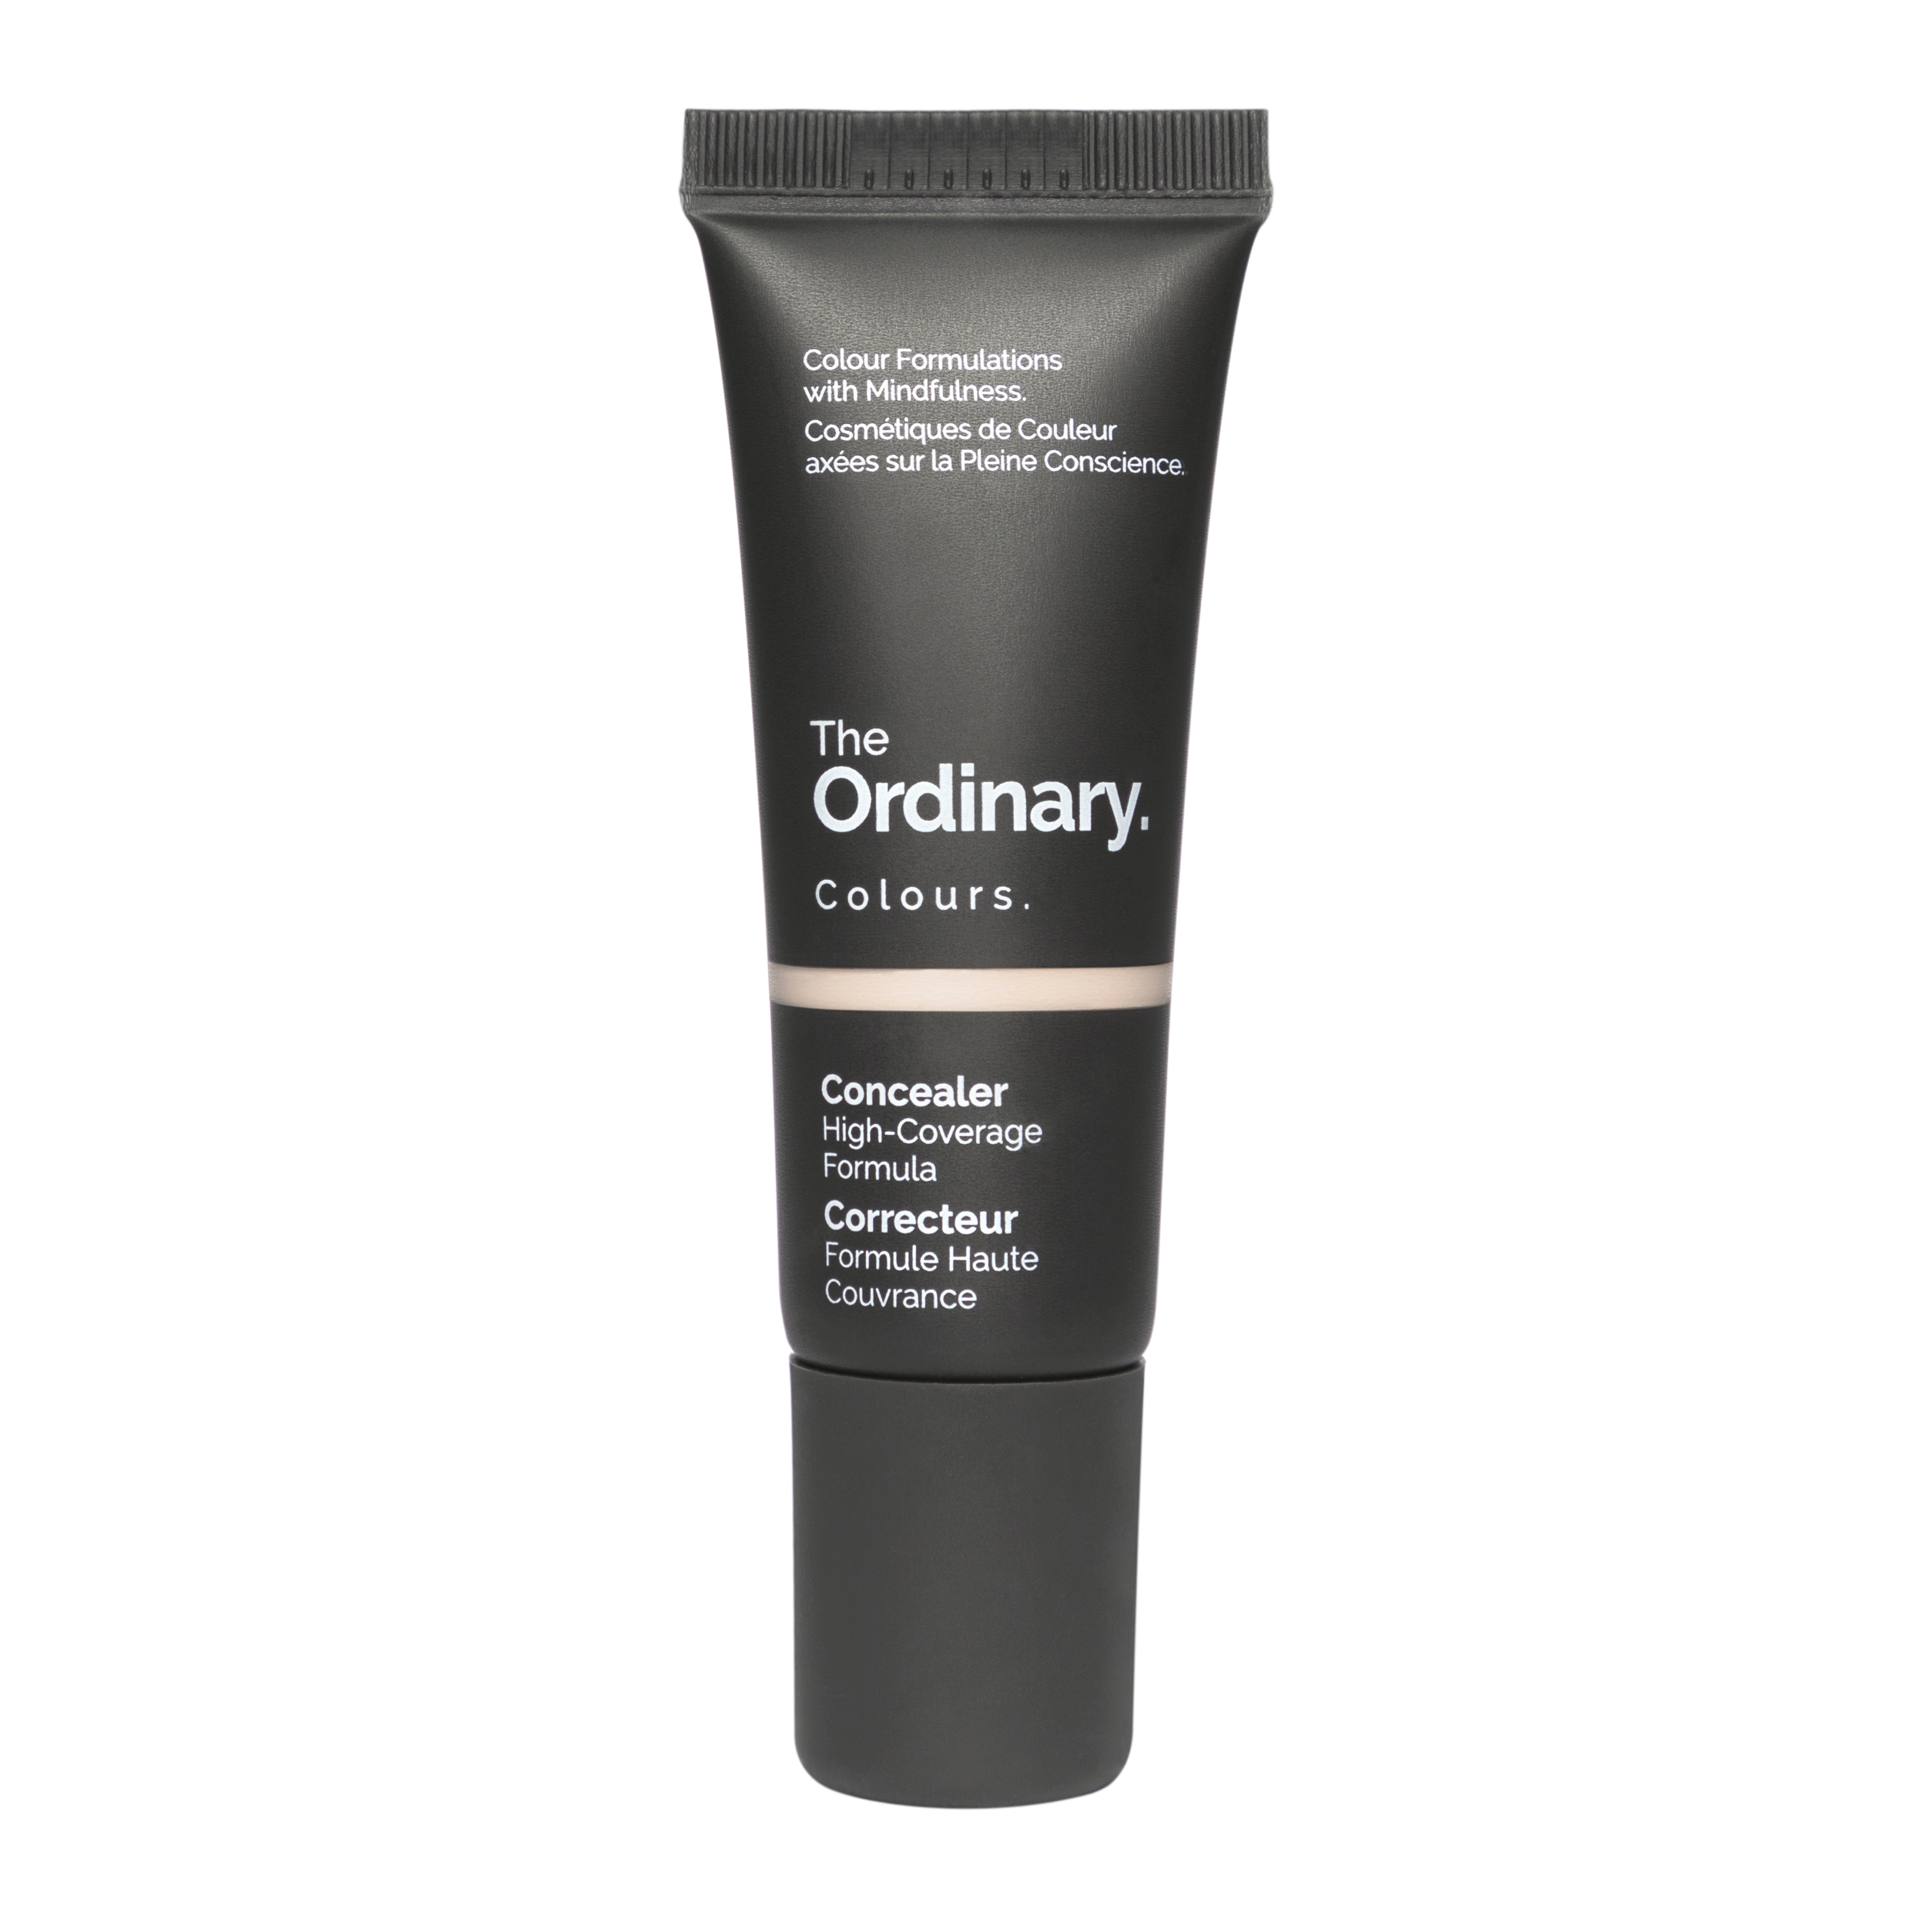 Ordinary_concealer_product_1.0N_v.1.0_a91d_thumbnail